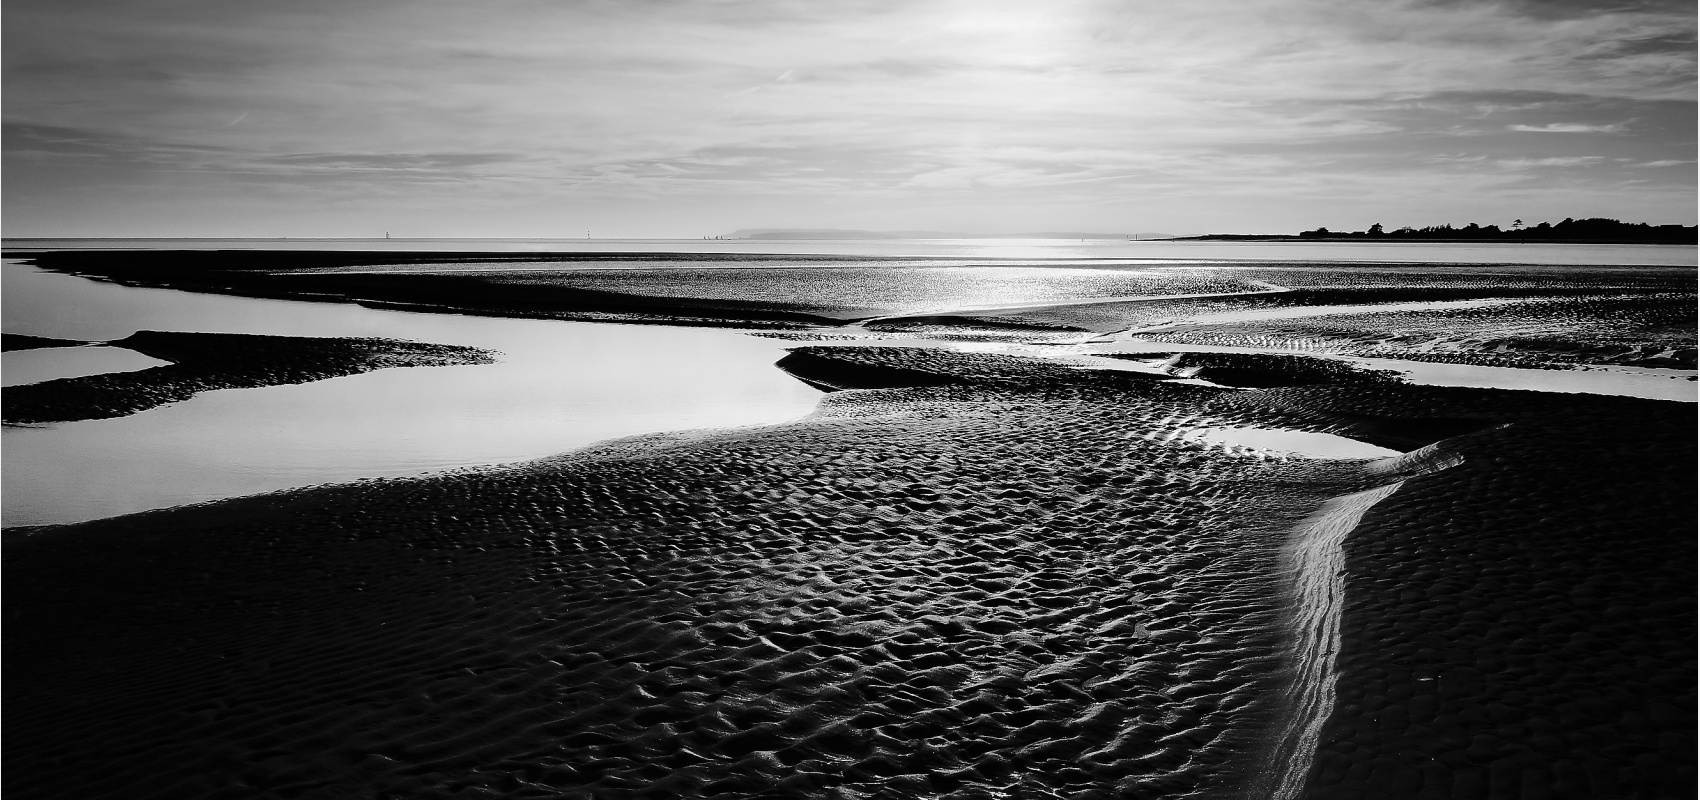 Coastal series. Beach at low tide and the sand patterns revealed.